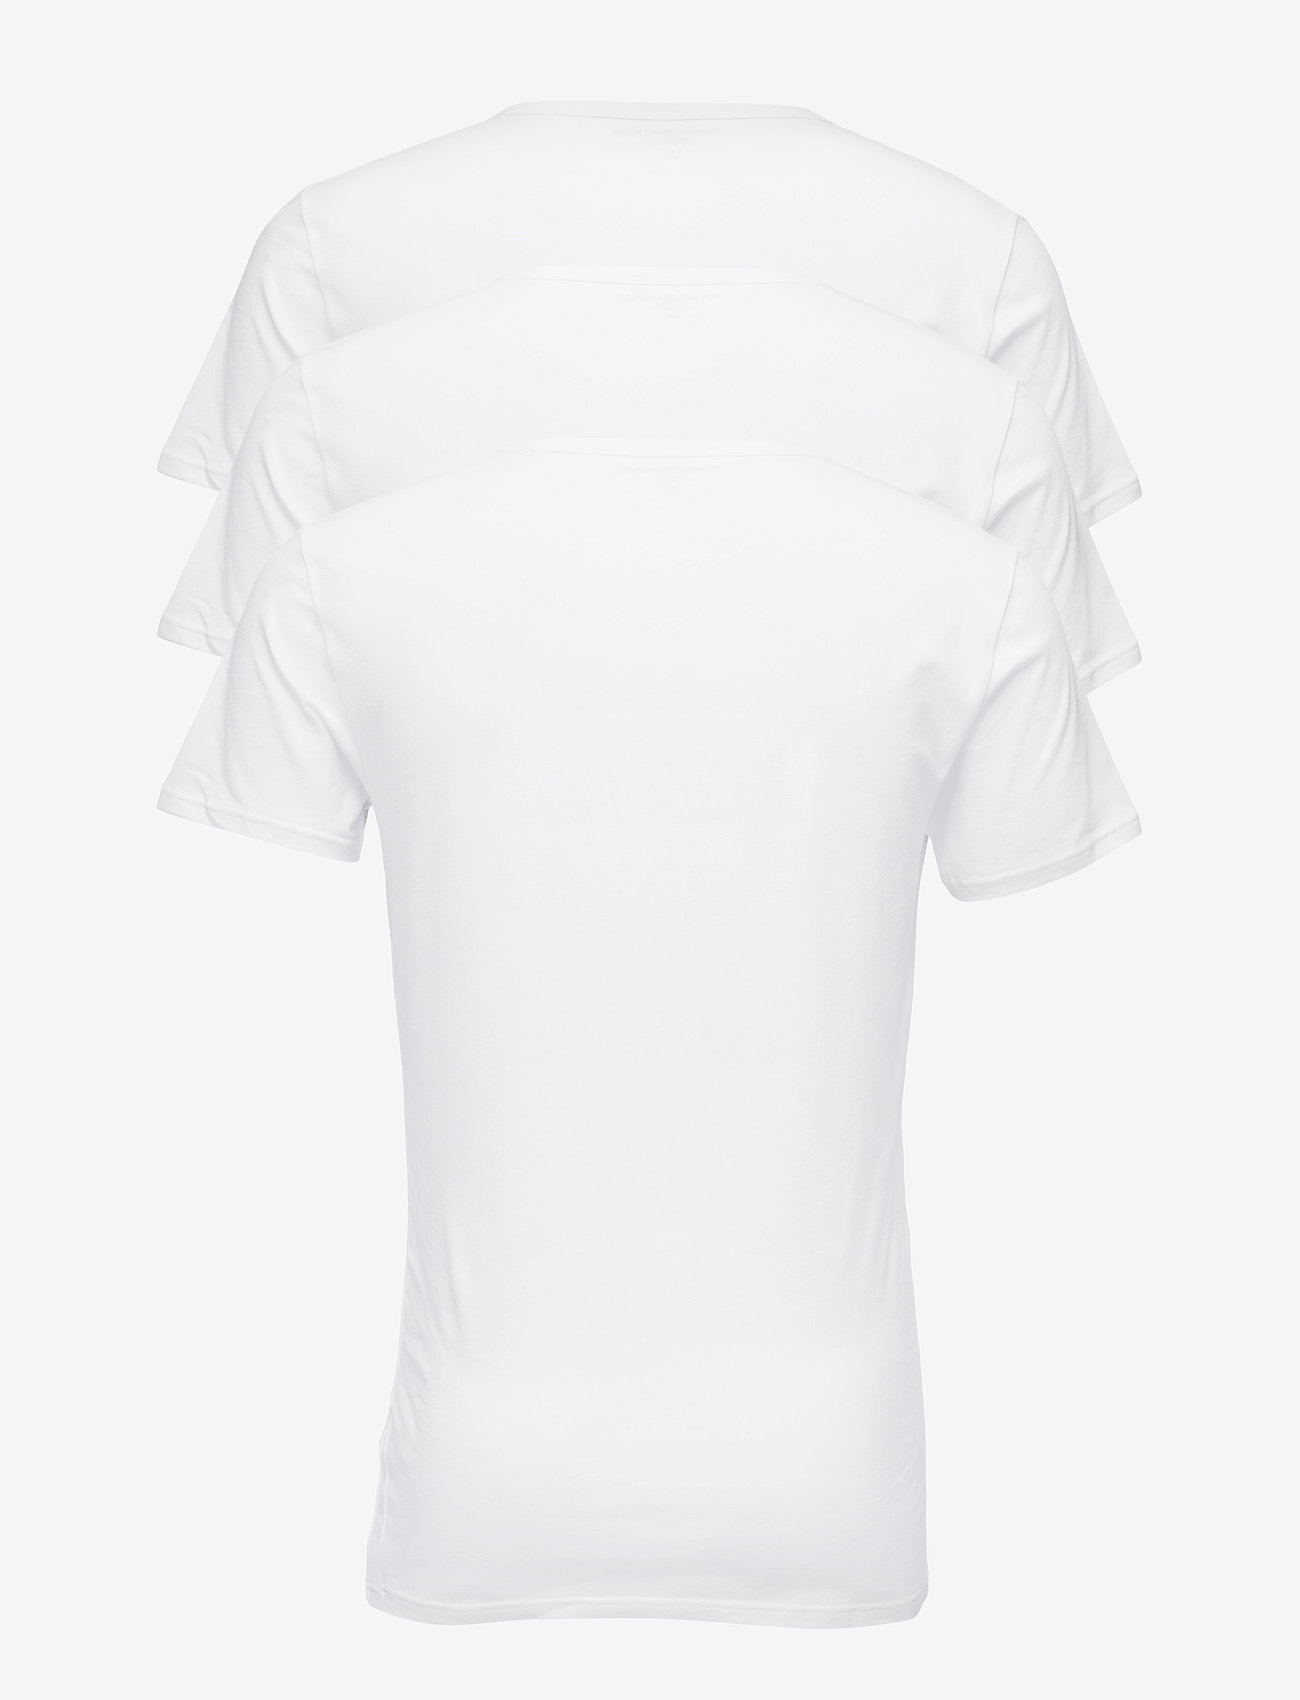 Tommy Hilfiger Vn Tee Ss 3 Pack Pre - T-shirts White